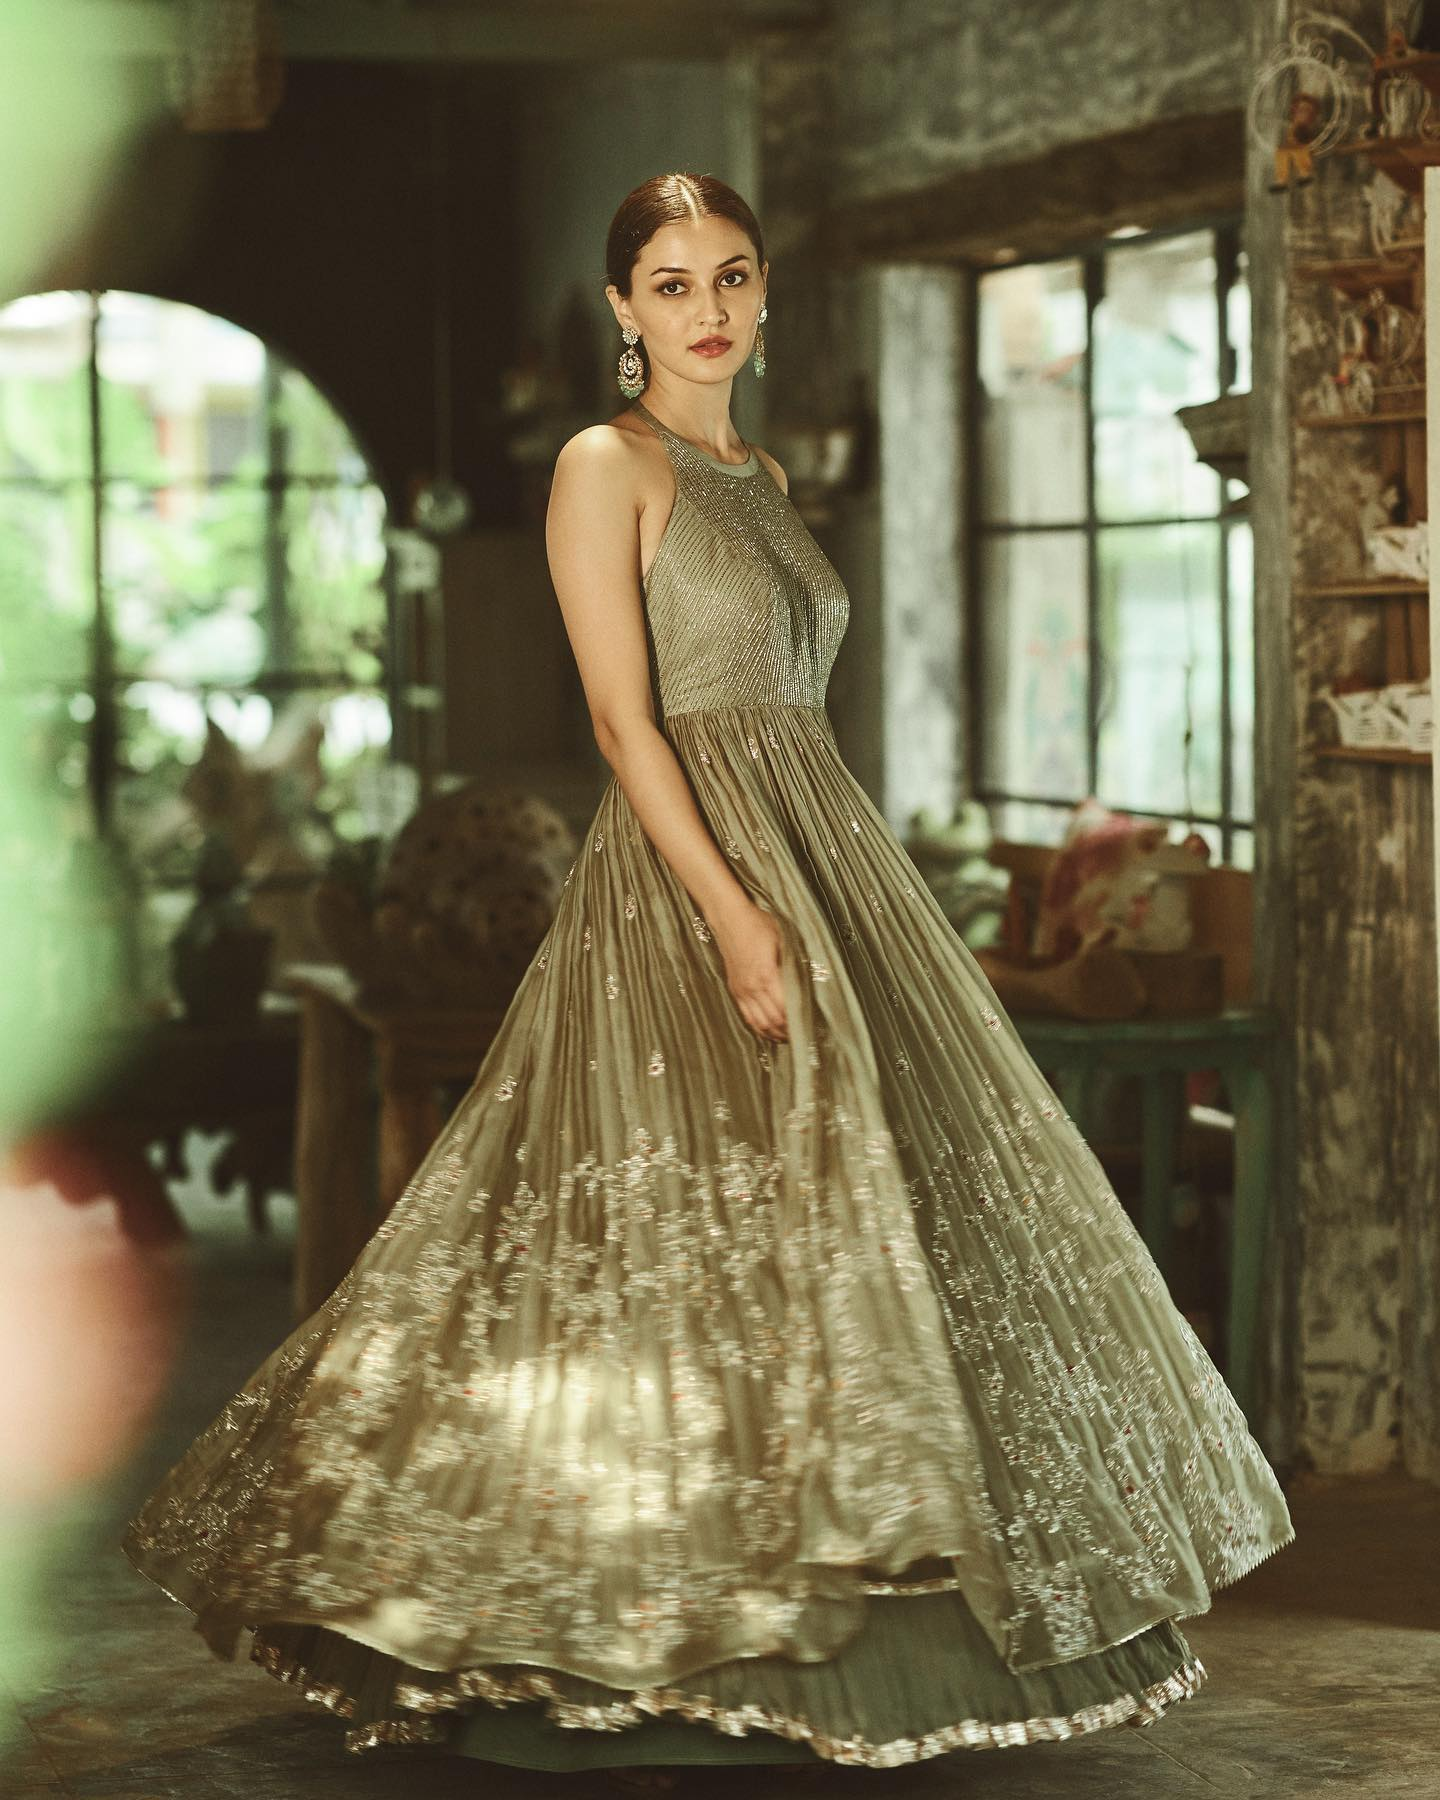 Phulwari . Gulshaat seen in  Rosemary green organza gown which has a cutdana torso and a halter neck and tie detailing. The bottom of the gown is double layered and has an intricate pita work floral jaal.  To shop our new collection Phulwari DM or Whatsapp  on +91 6302 878 533. 2021-06-07